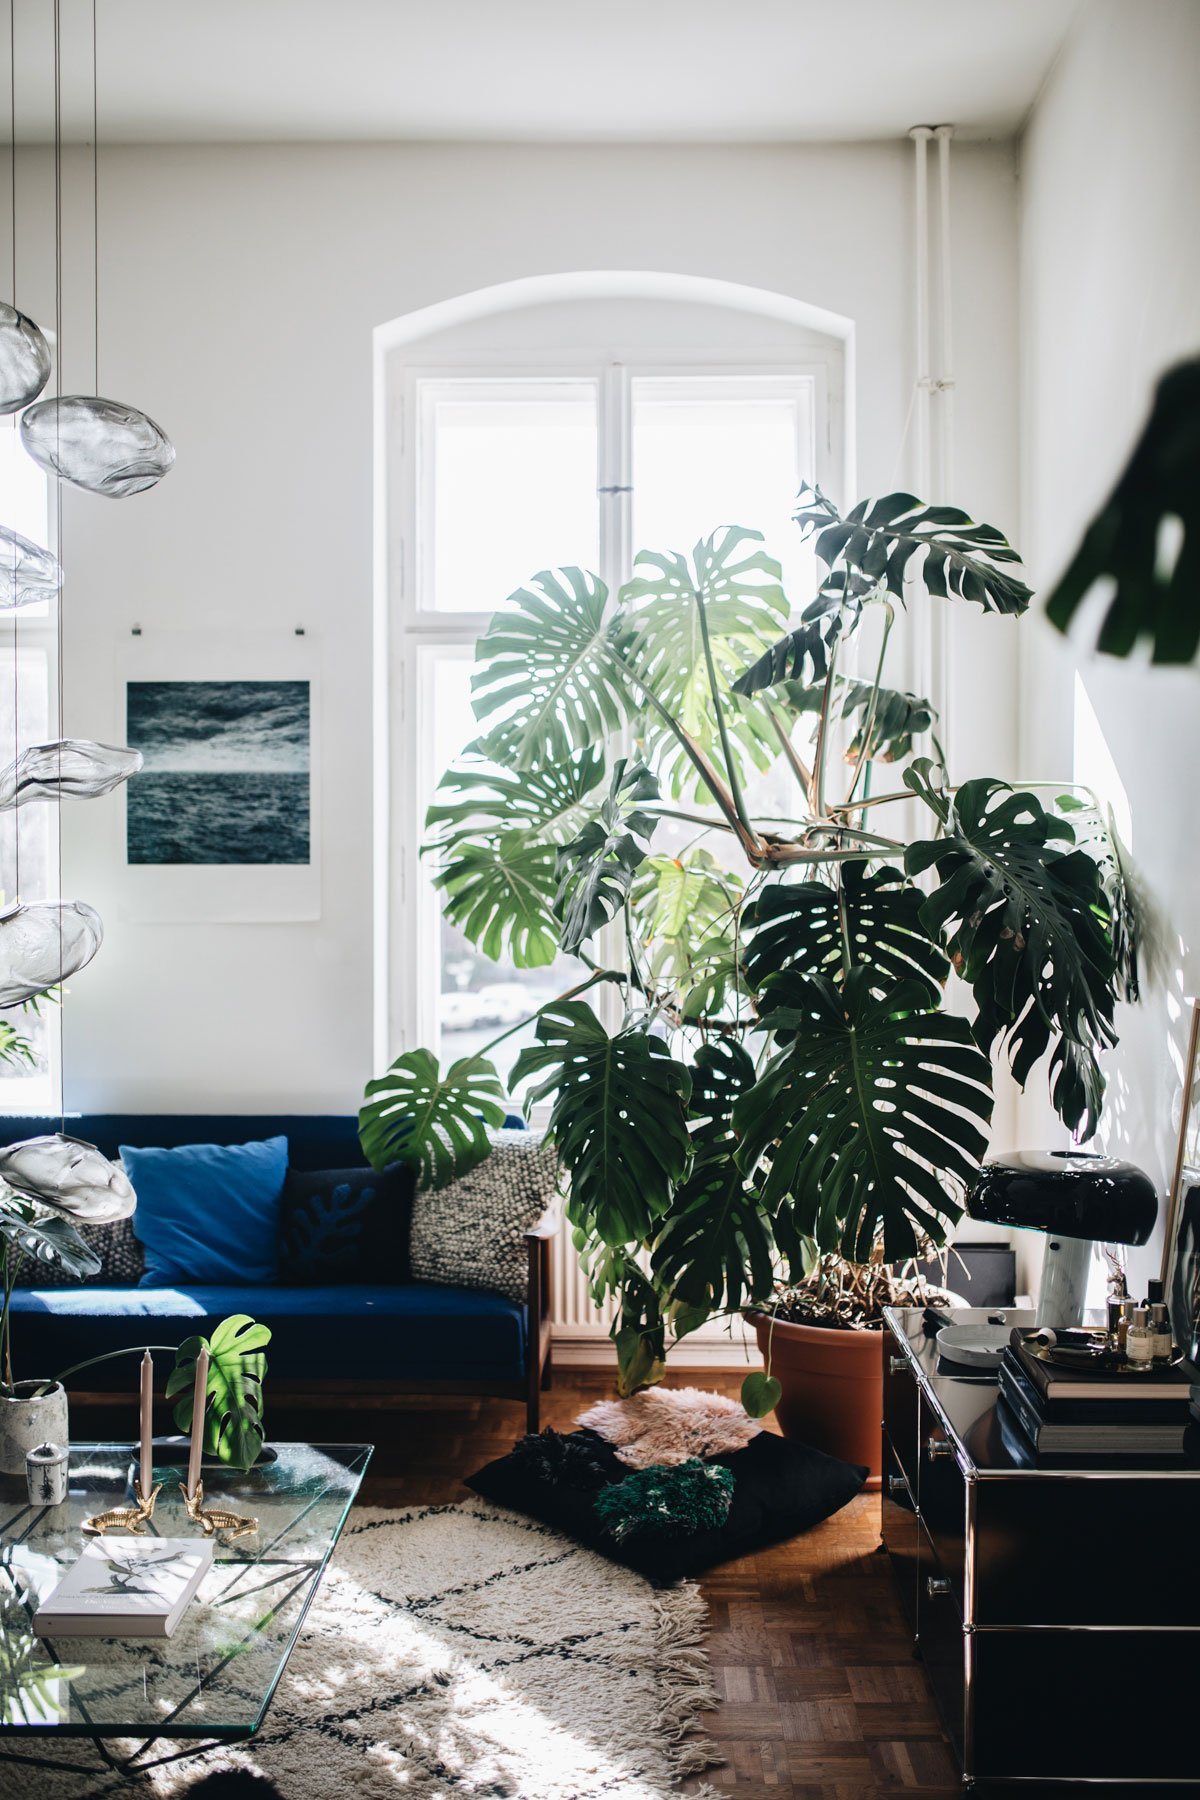 PLANT TRIBELIVING HAPPILY EVER AFTER WITH PLANTSBy Igor Josifovic & Judith de Graaff Photo: The home of Tim Labenda In Berlin.Photography by Jules Villbrandtfor Urban Jungle Bloggers.